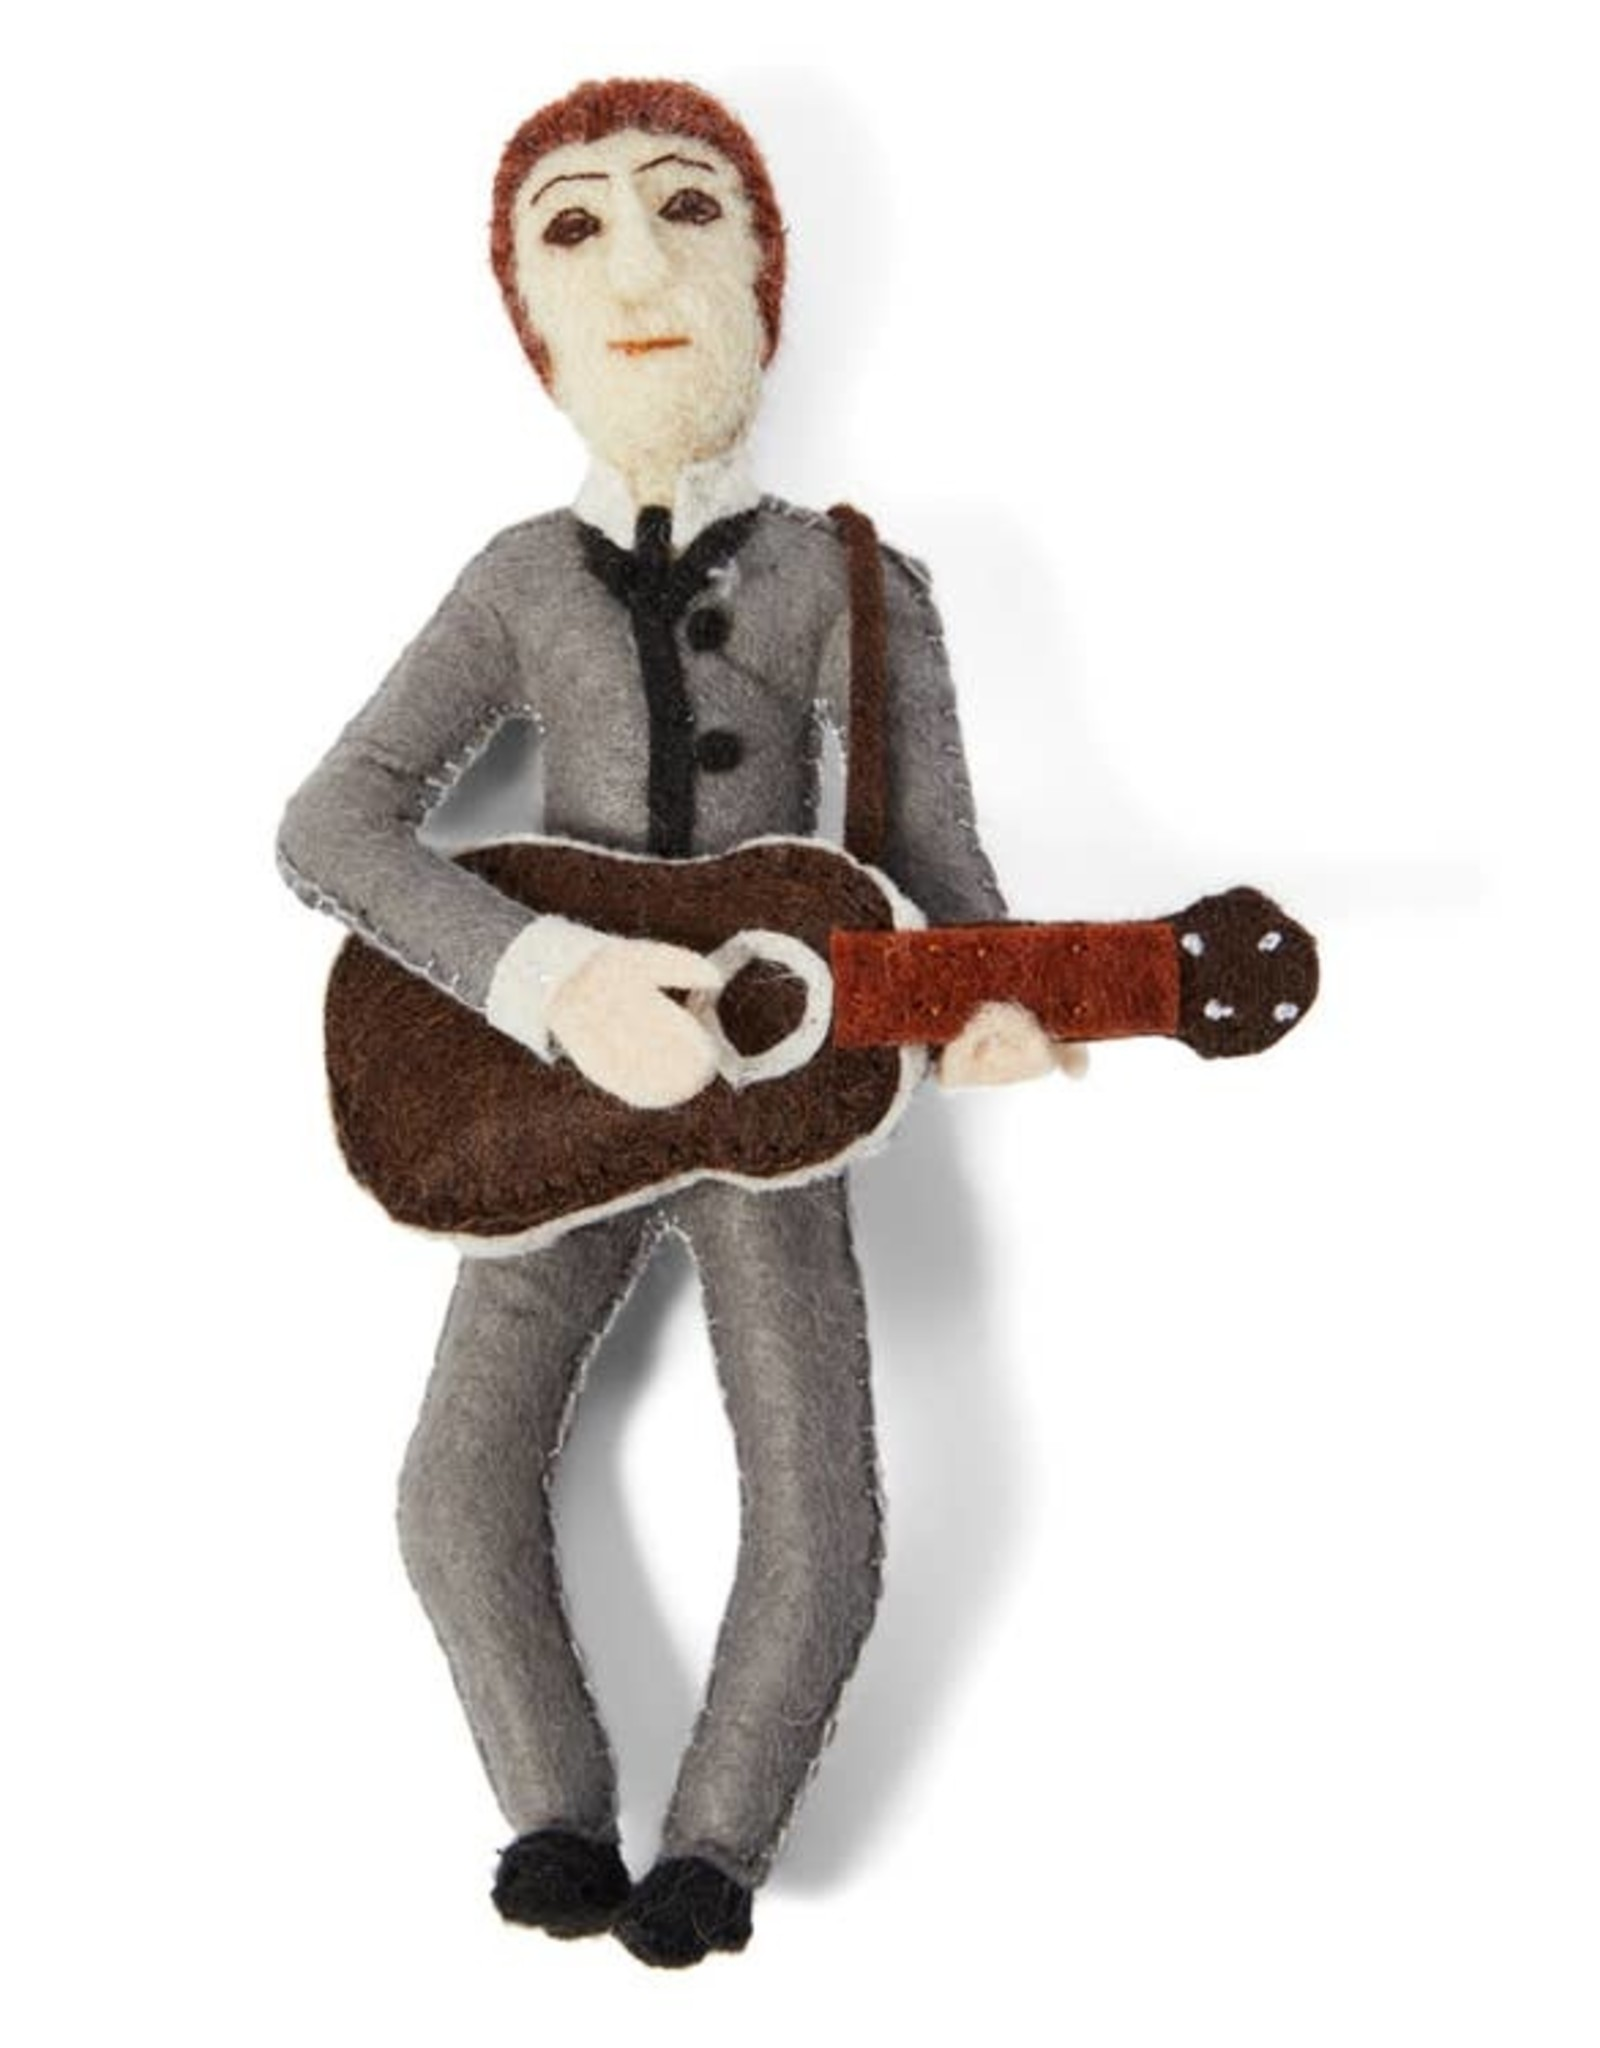 John Lennon Ornament